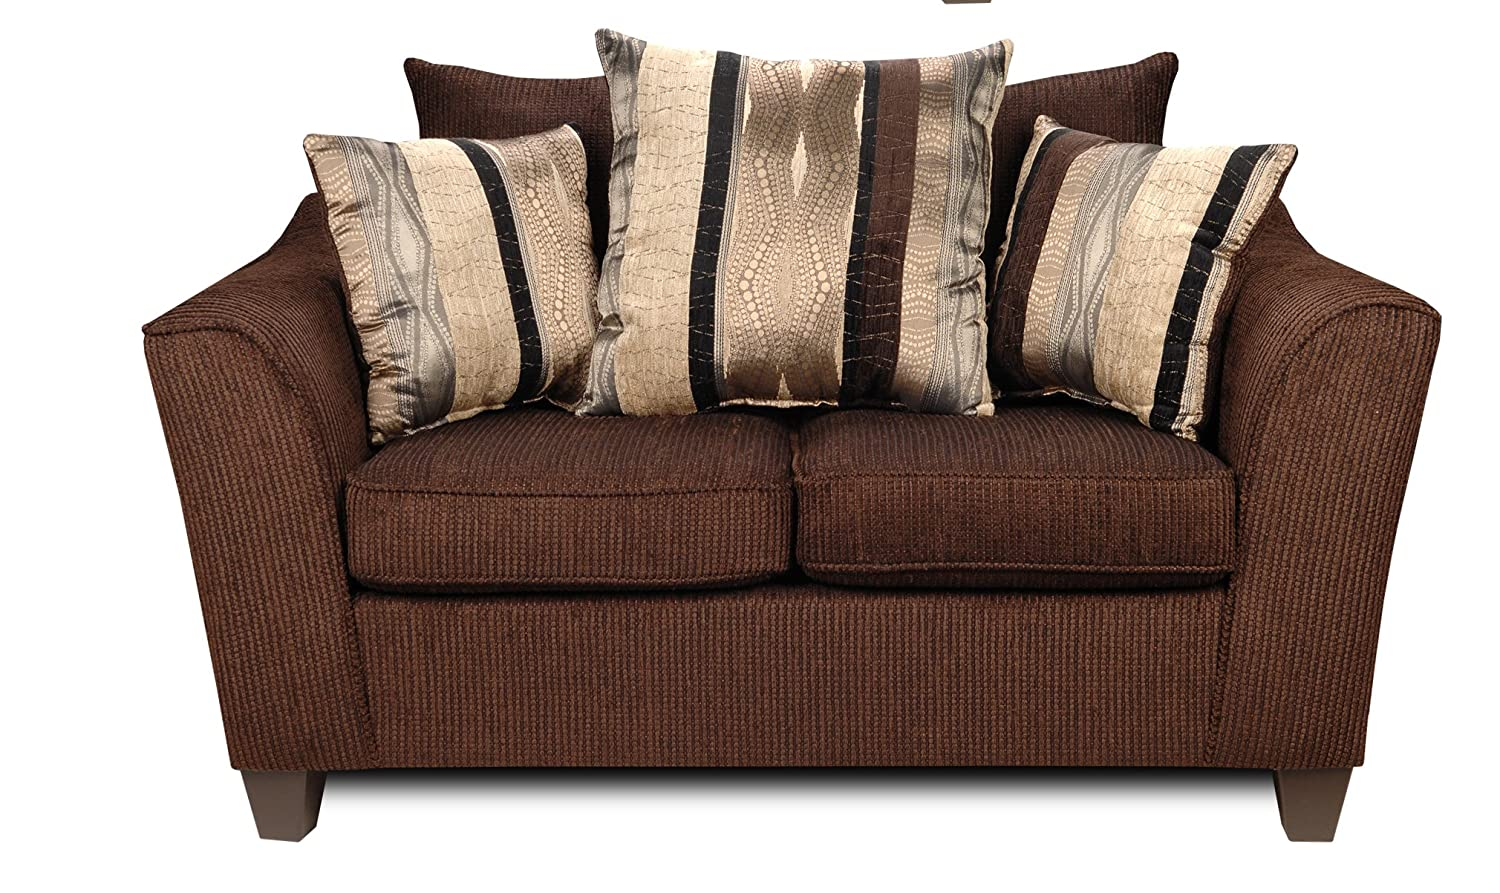 Chelsea Home Furniture Lizzy Loveseat - Upholstered in Romance Brown/Kendu Onyx